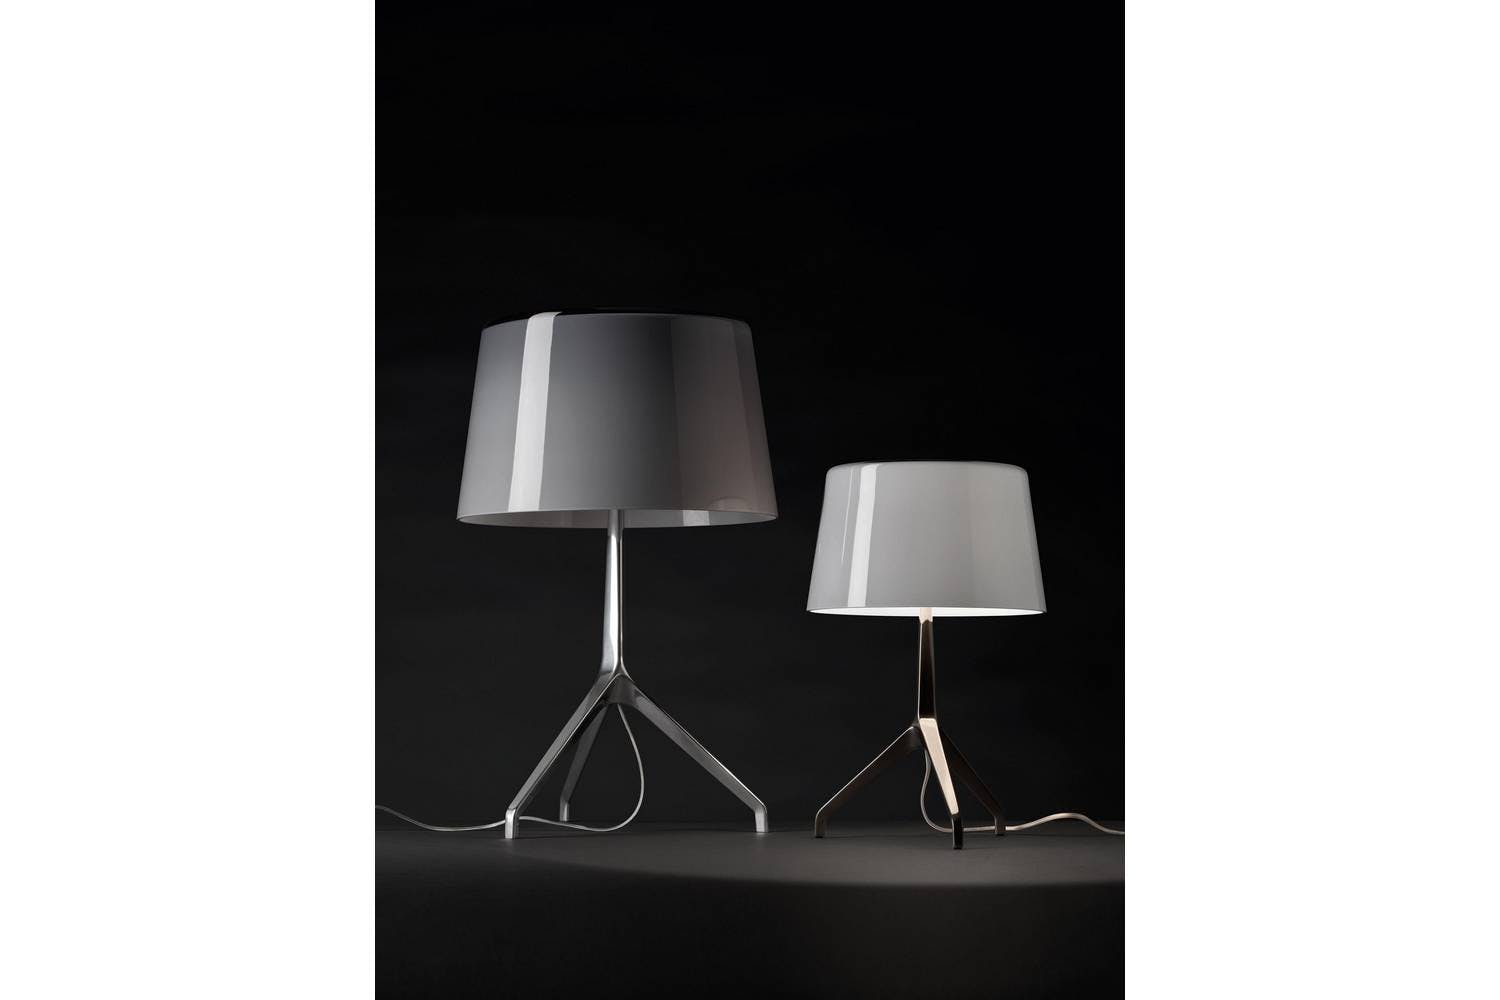 Lumiere xxl table lamp by rodolfo dordoni for foscarini space lumiere xxl dimmer table lamp back to search results share mozeypictures Images